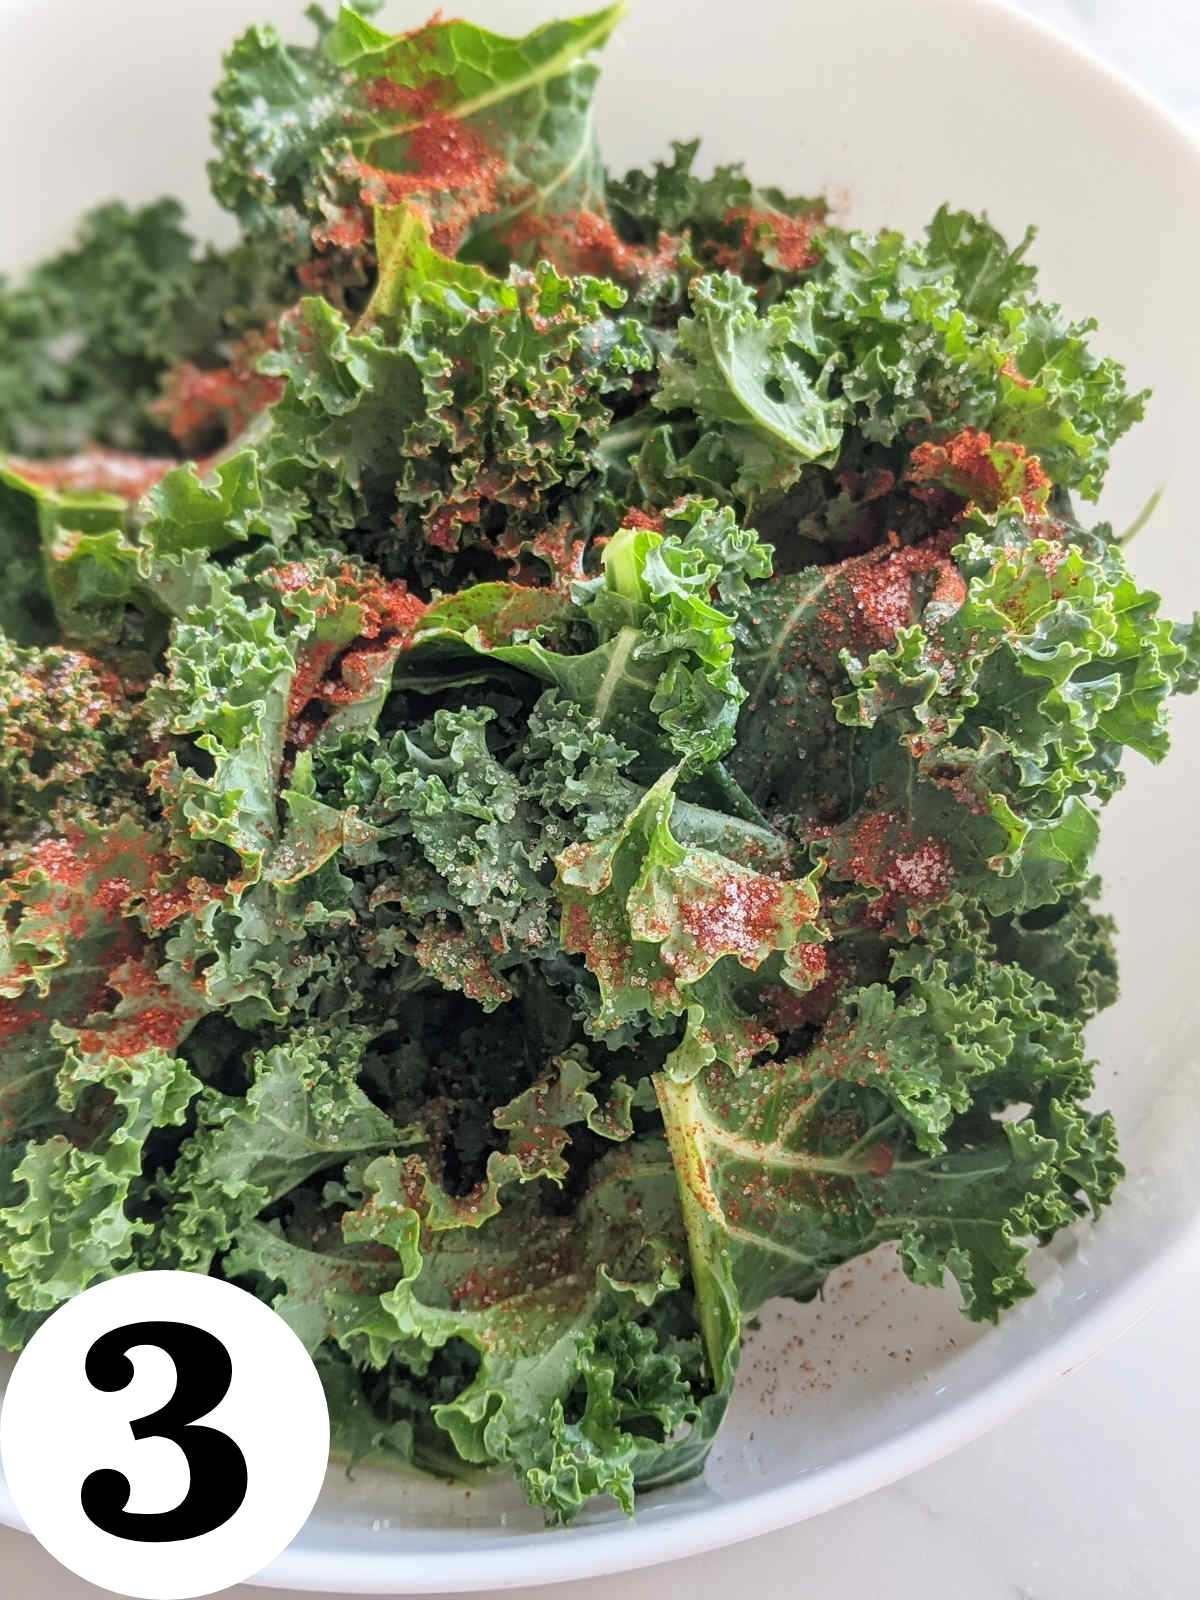 Chopped kale leaves in a bowl with seasonings.